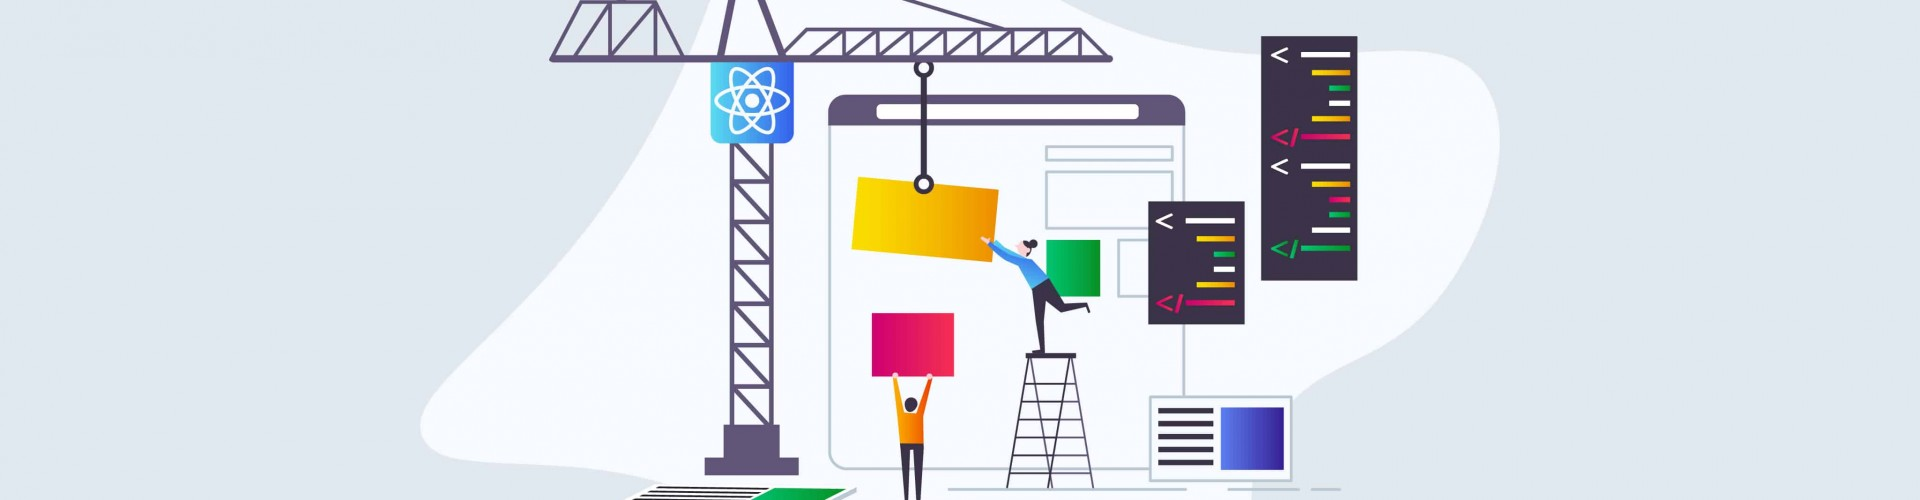 7 Advantages of using ReactJS in 2018